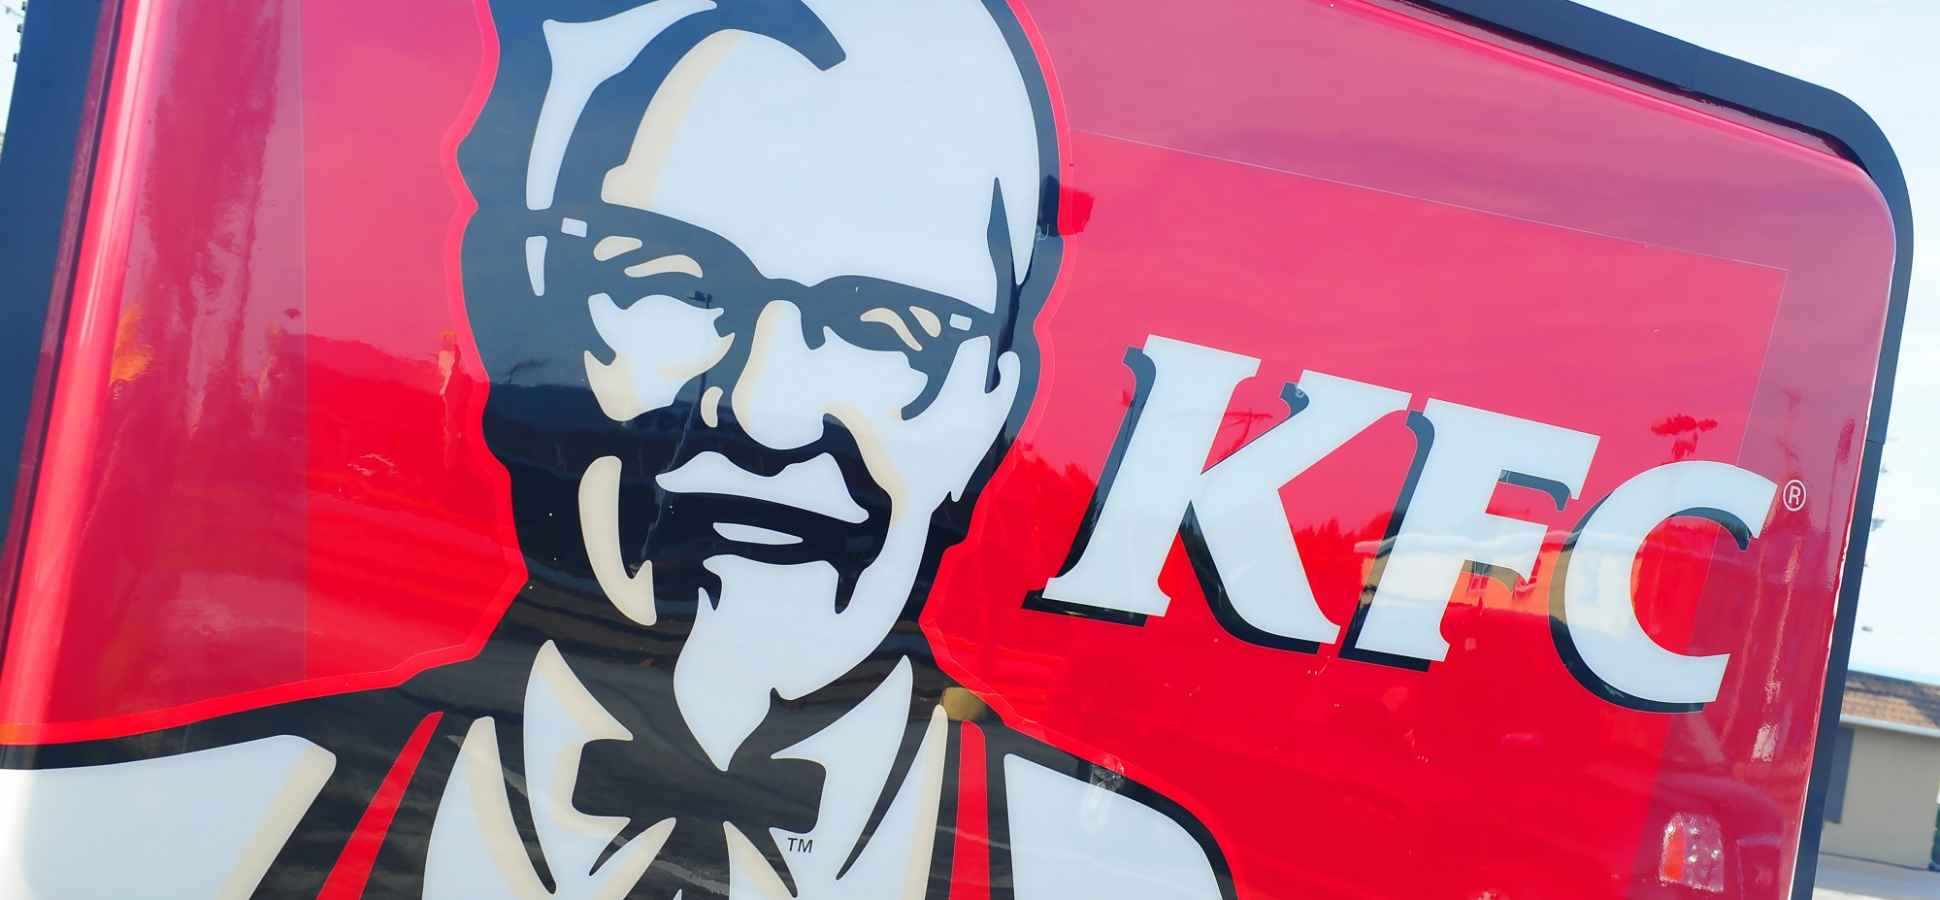 Genius Reason Why KFC's Twitter Account Follows Only 11 People